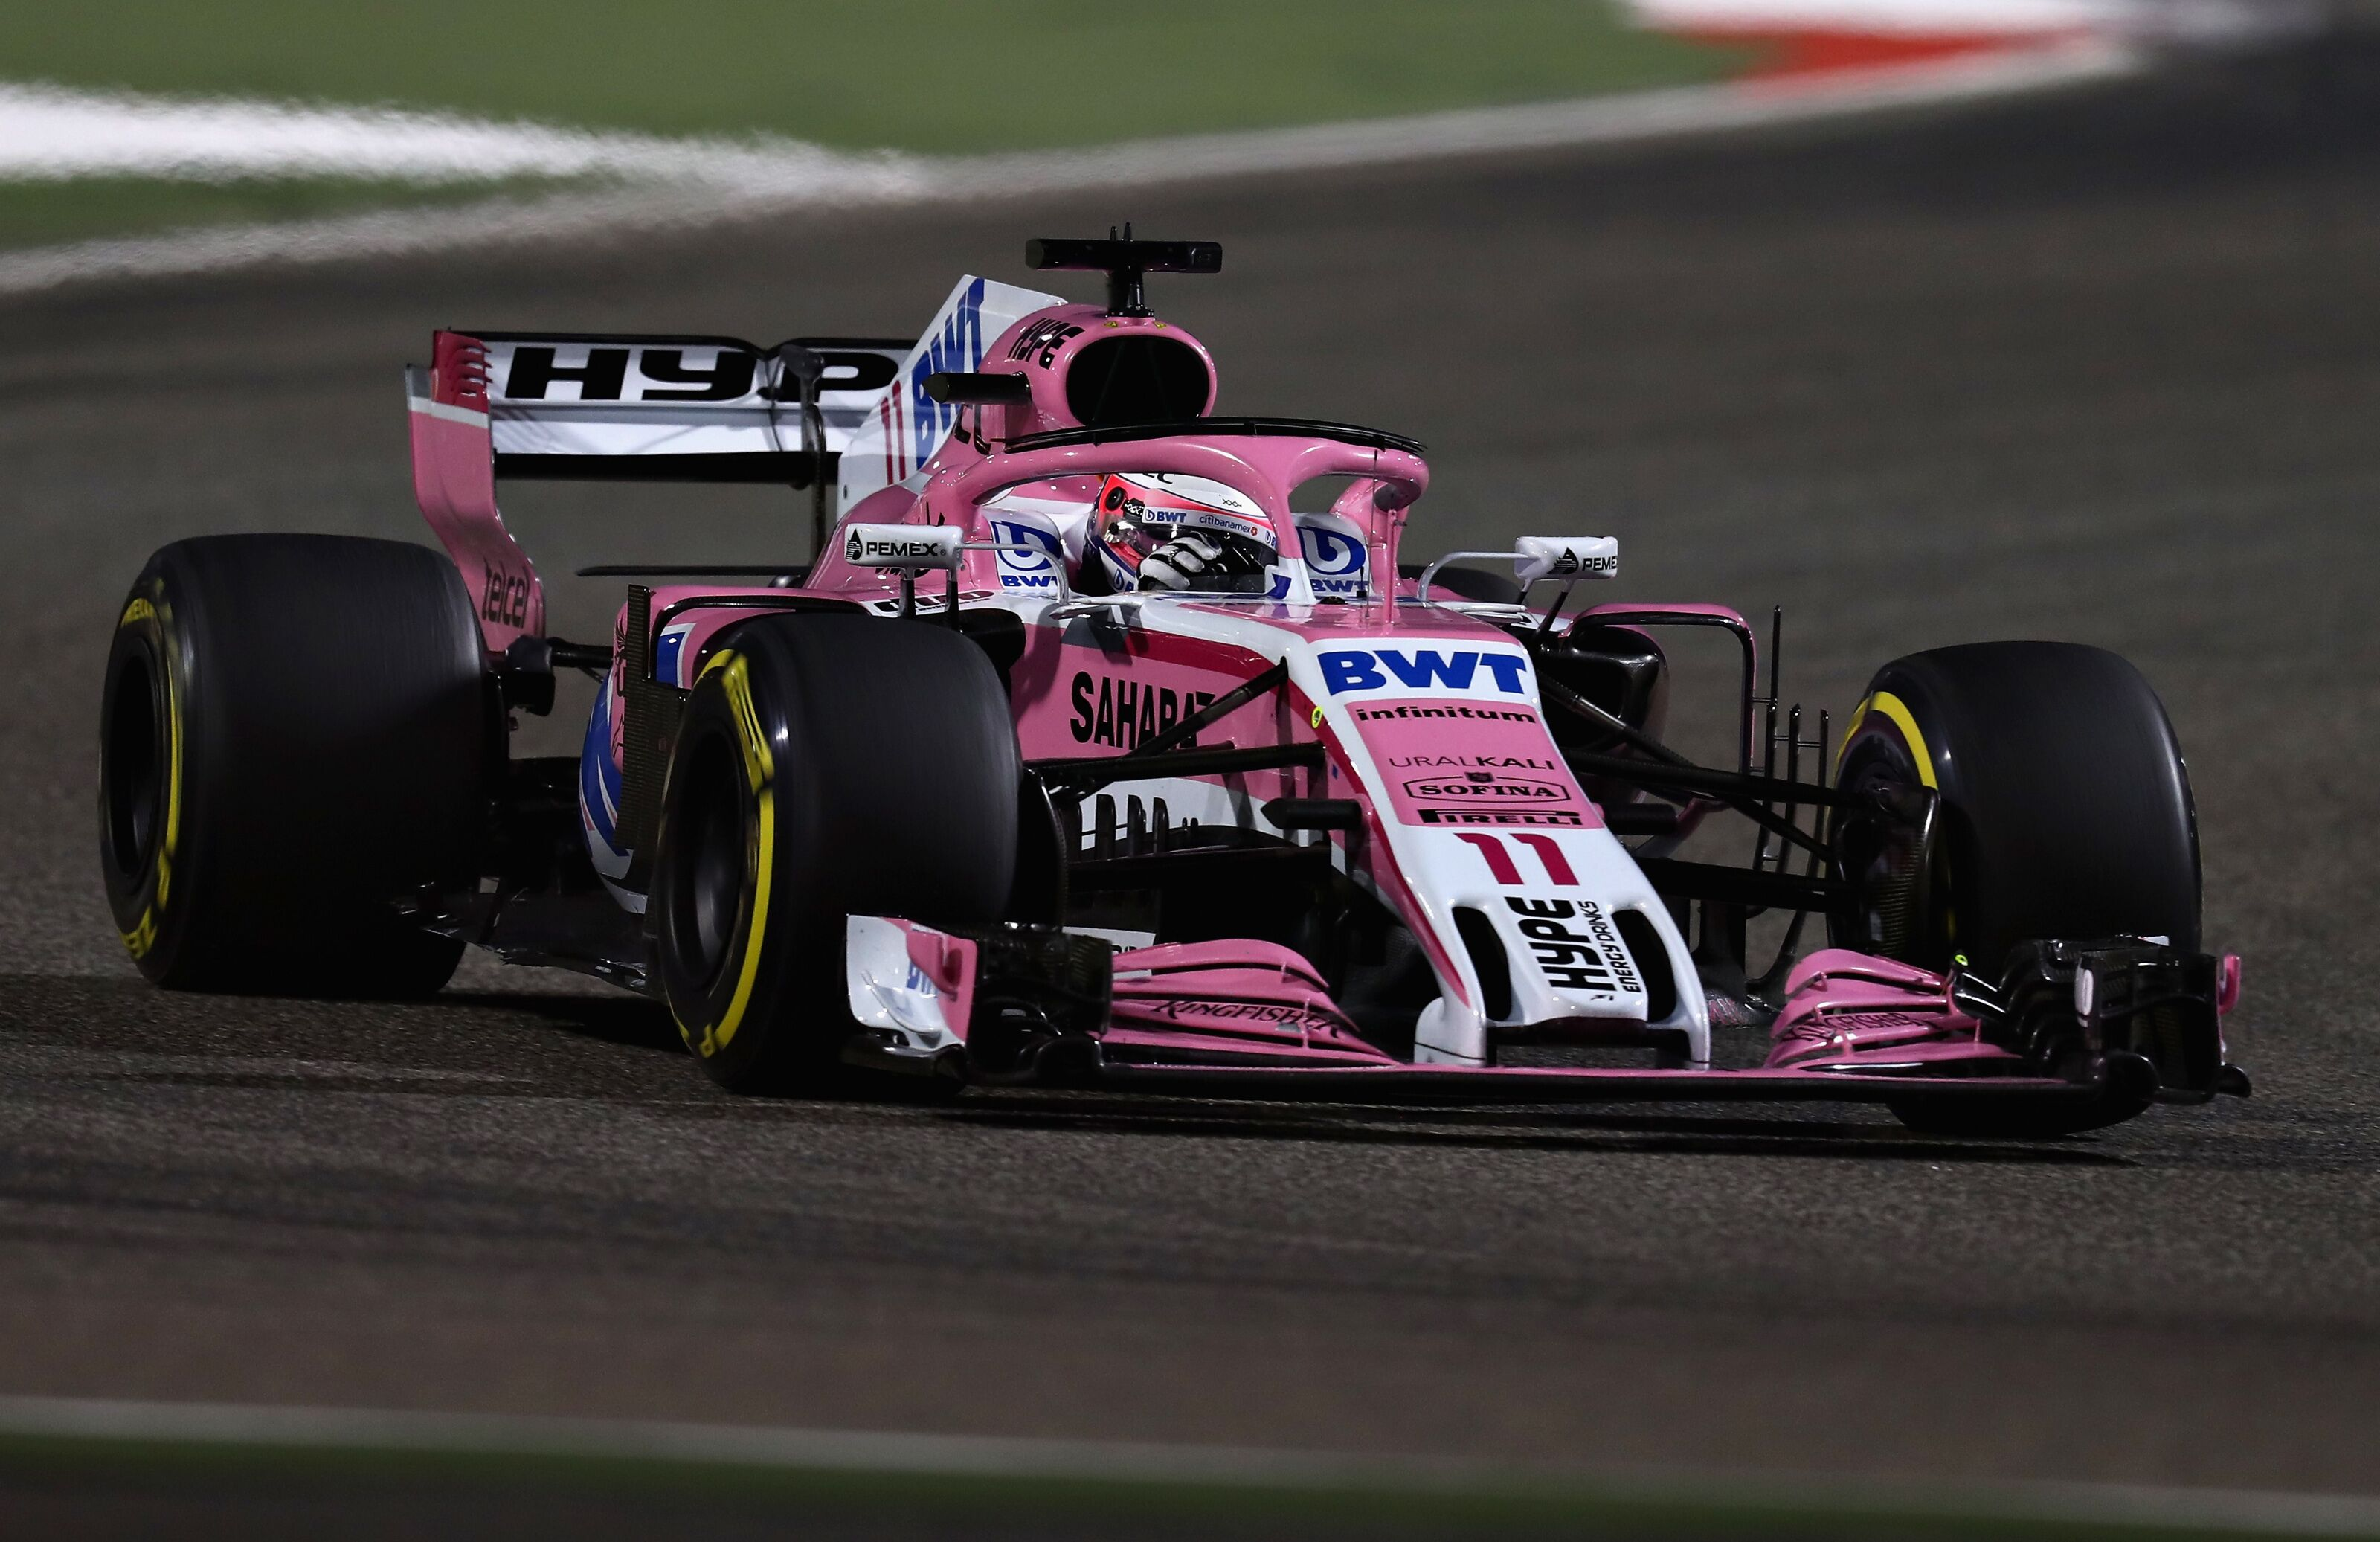 formula 1 post race penalties issued to sergio perez brendon hartley. Black Bedroom Furniture Sets. Home Design Ideas